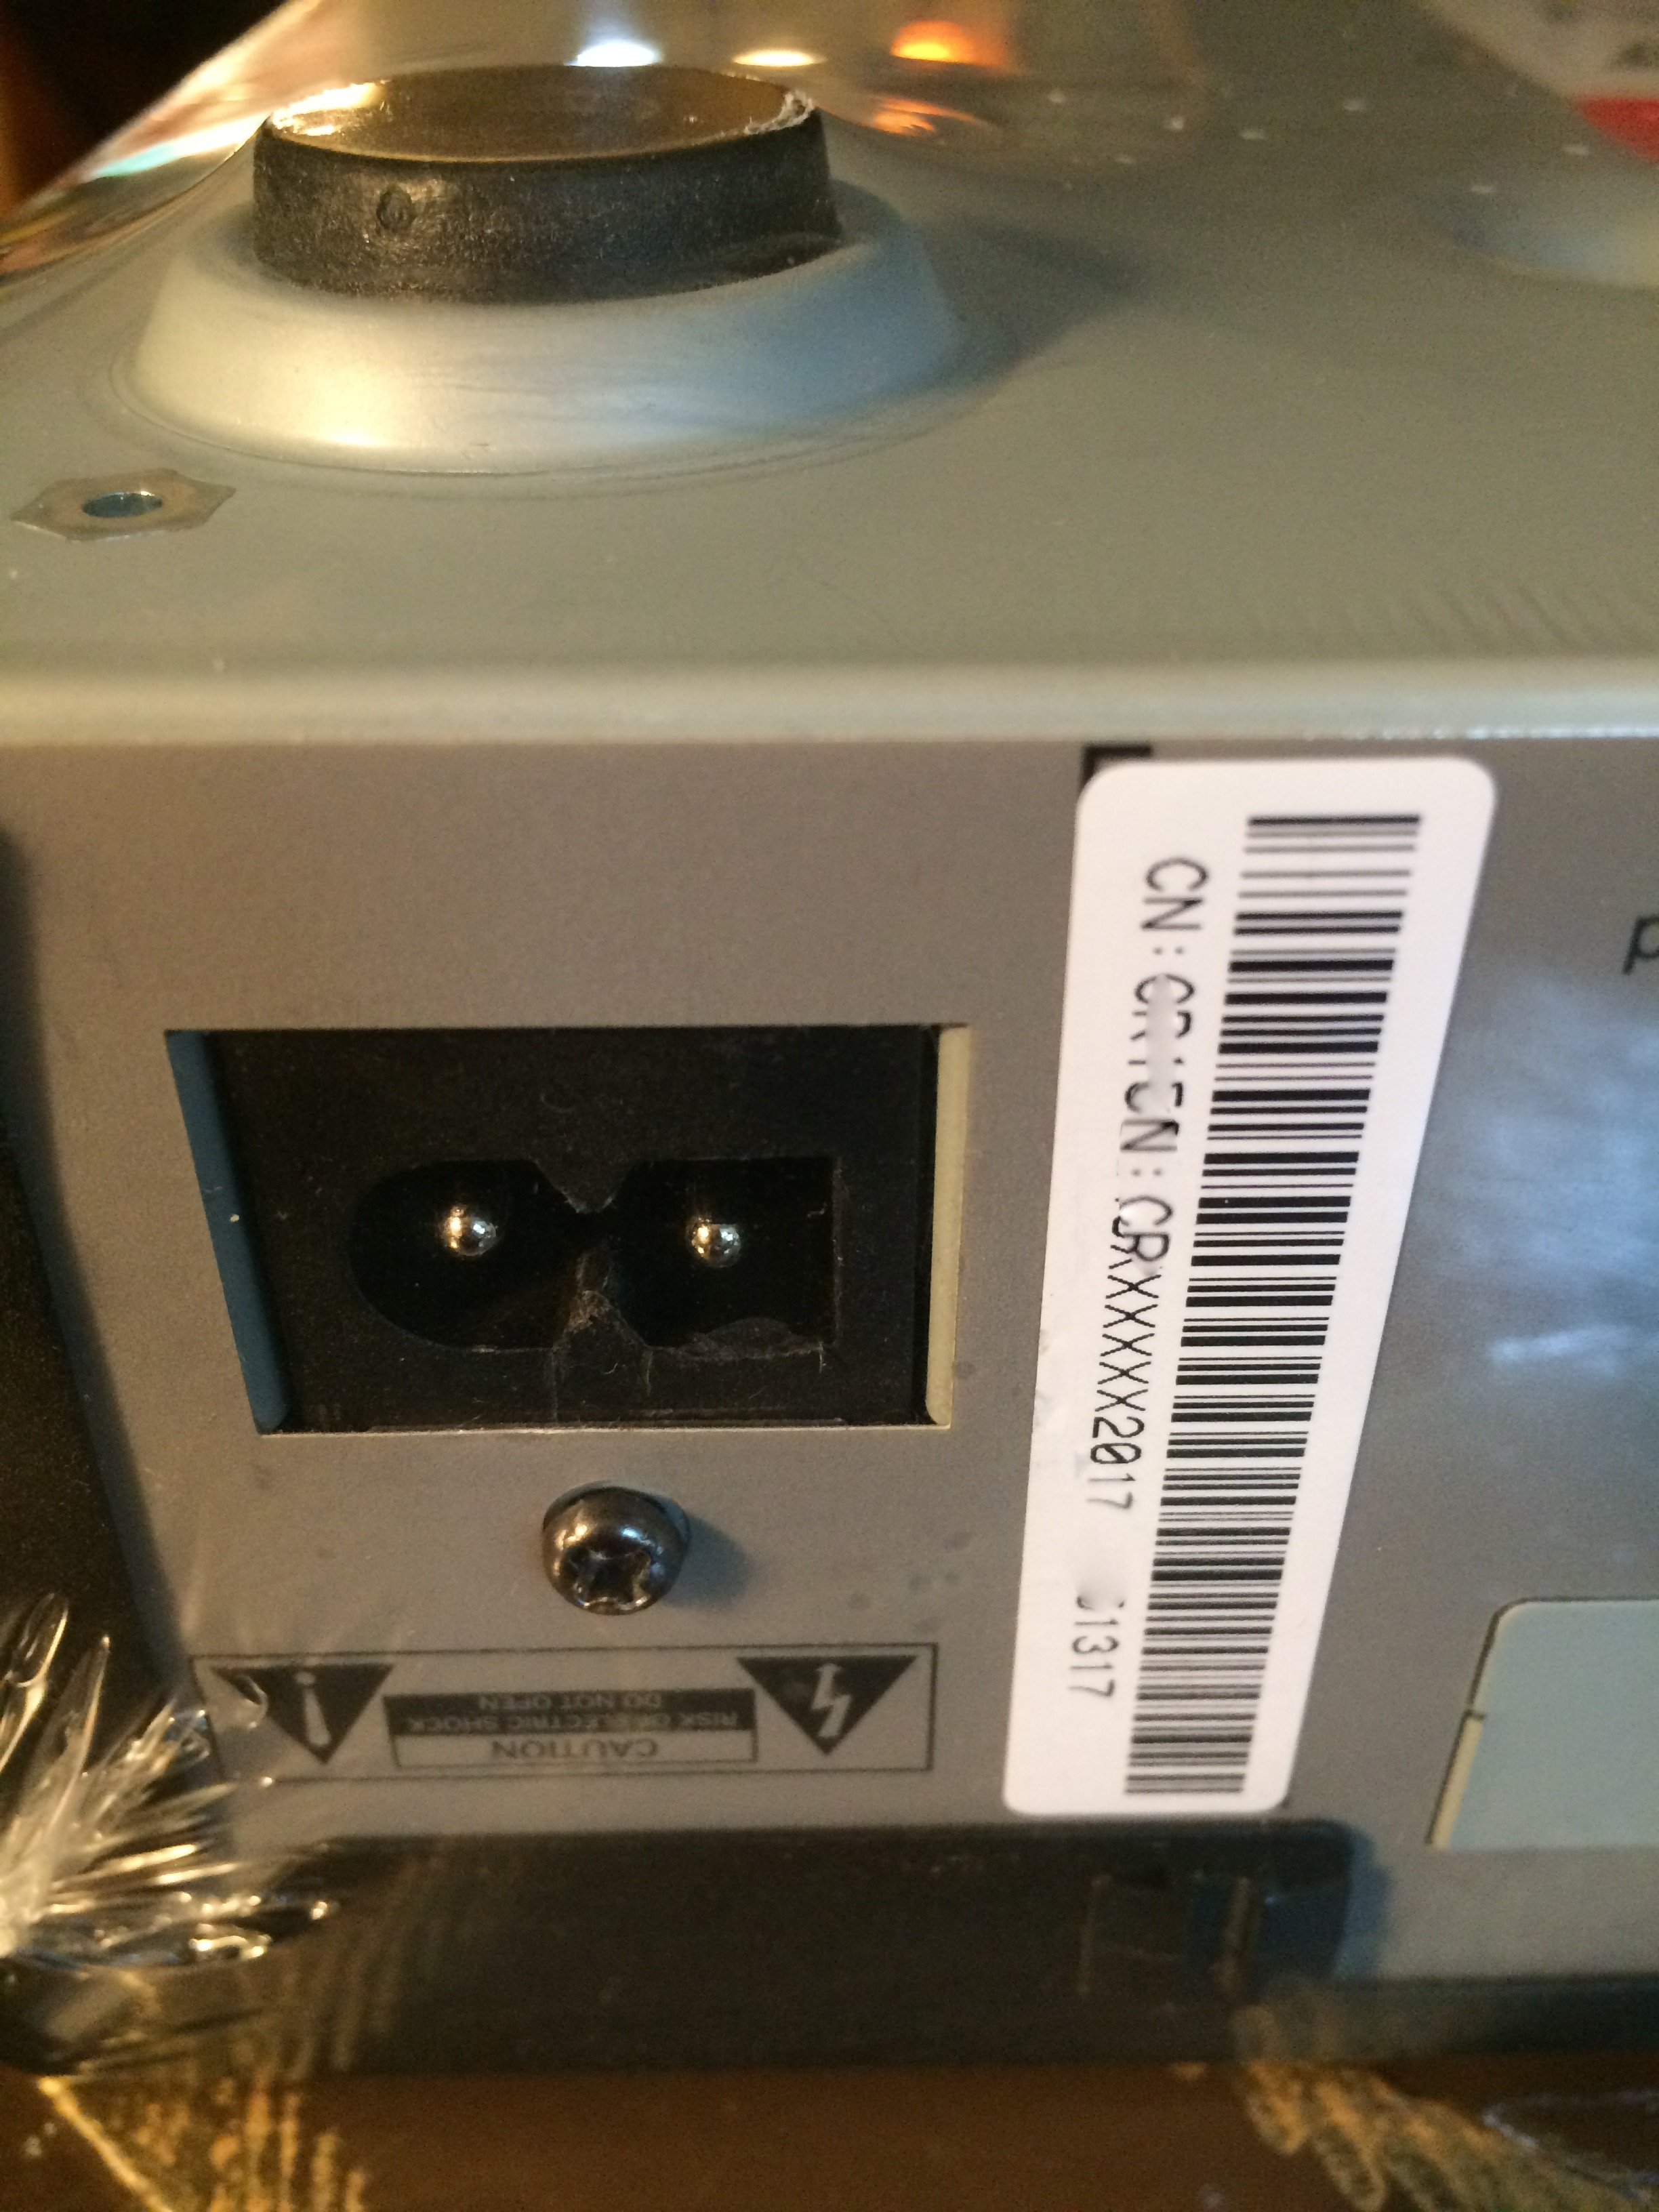 set top box plug connection